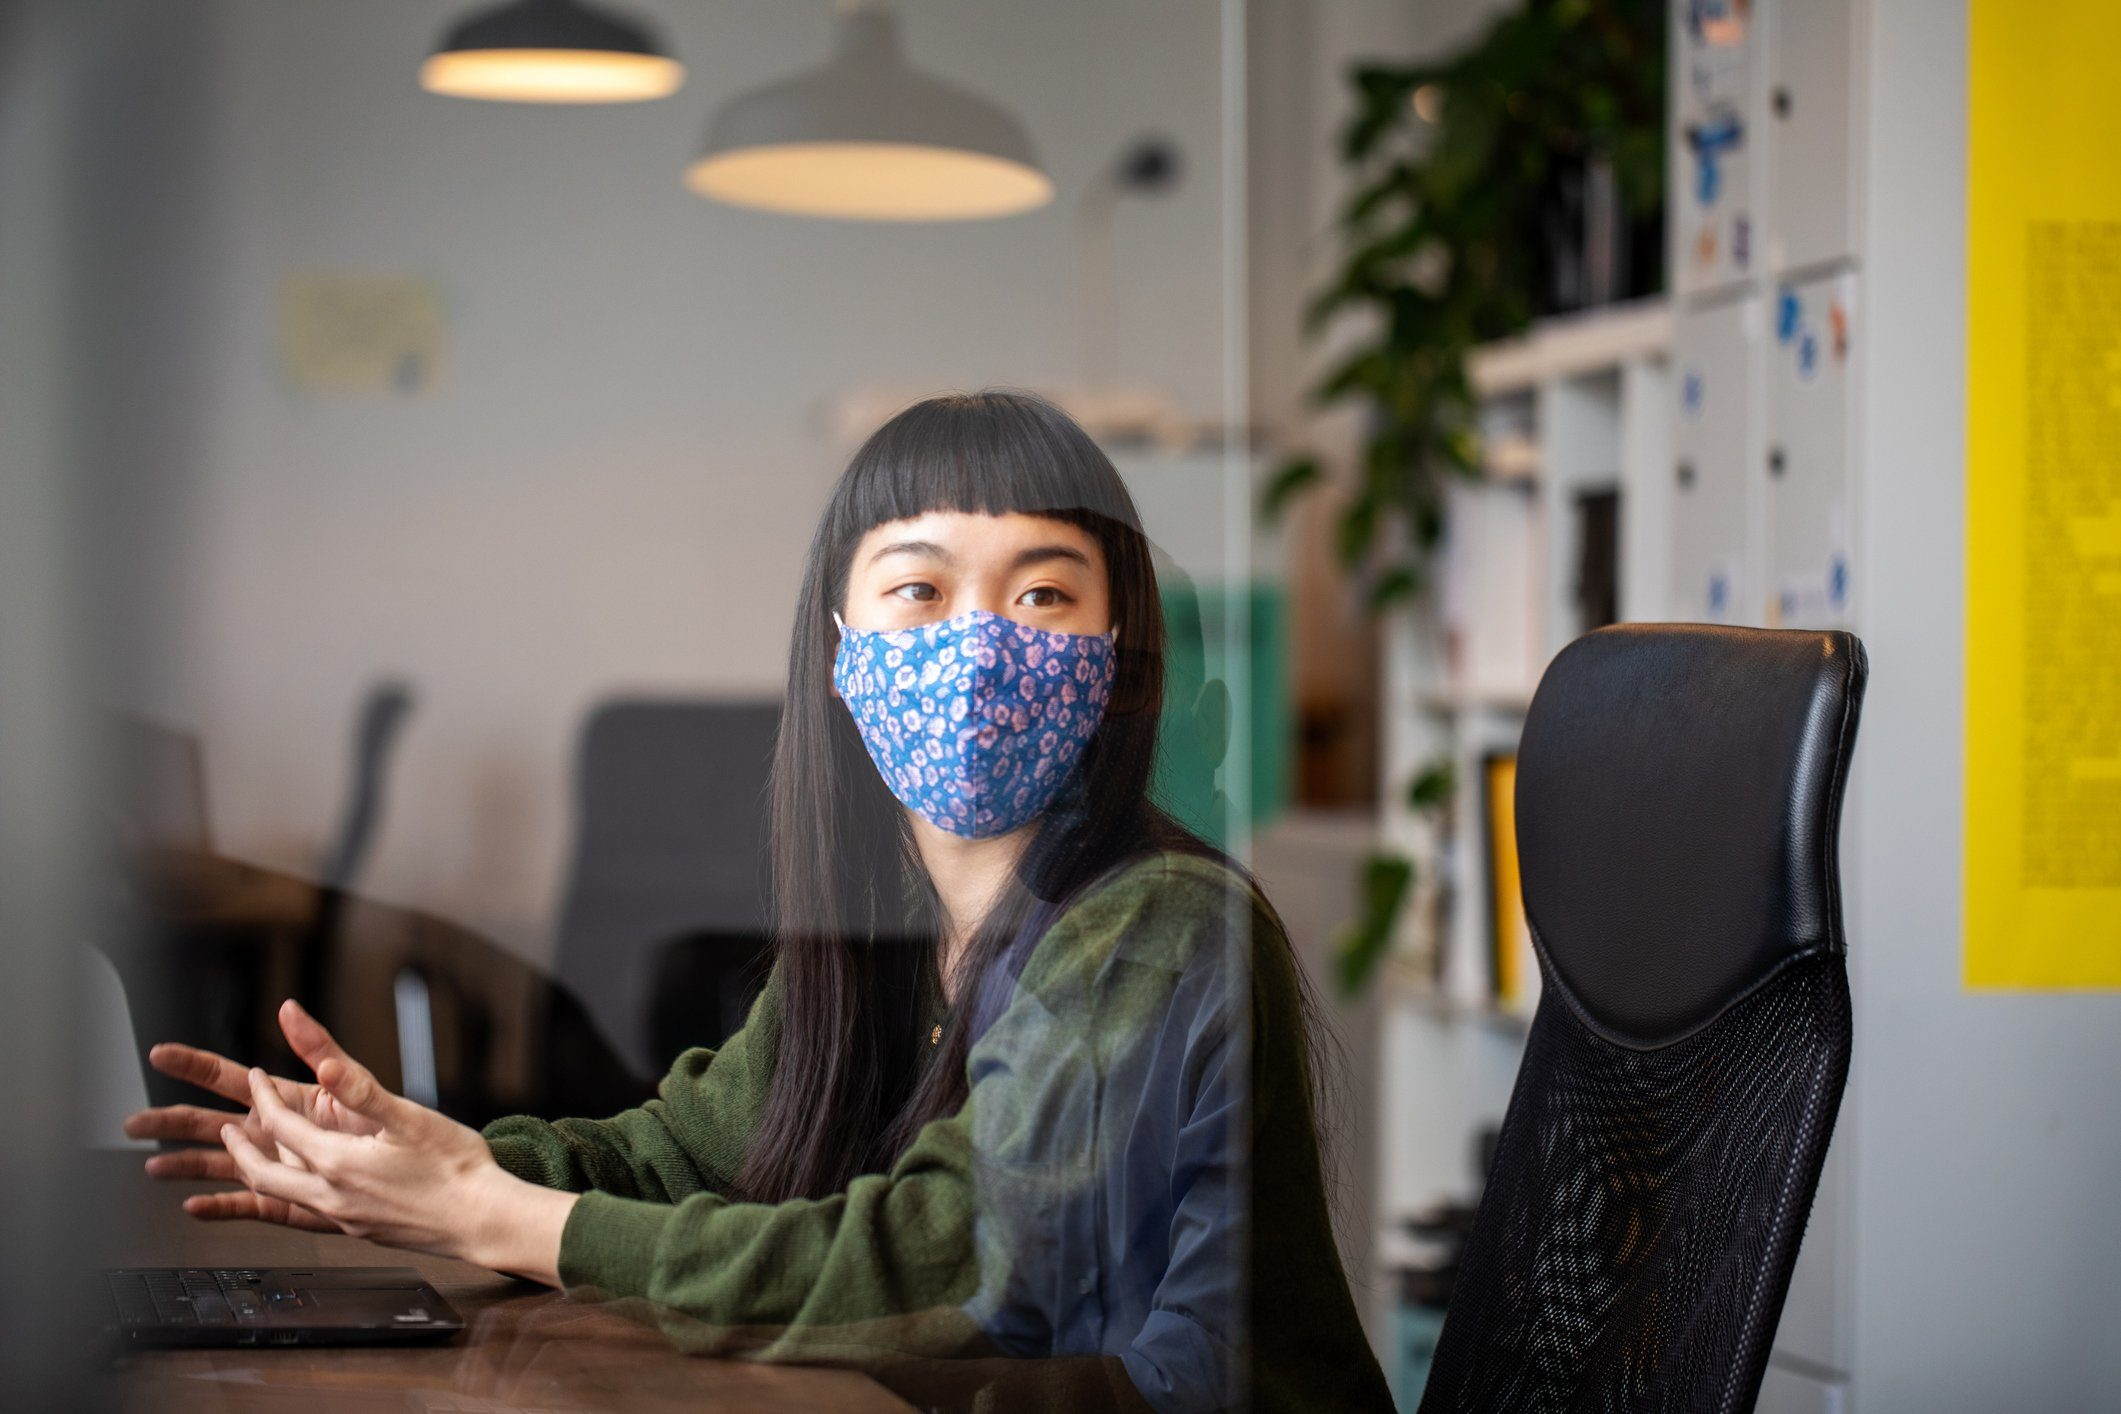 Businesswoman discussing work with colleague through glass shield on desk